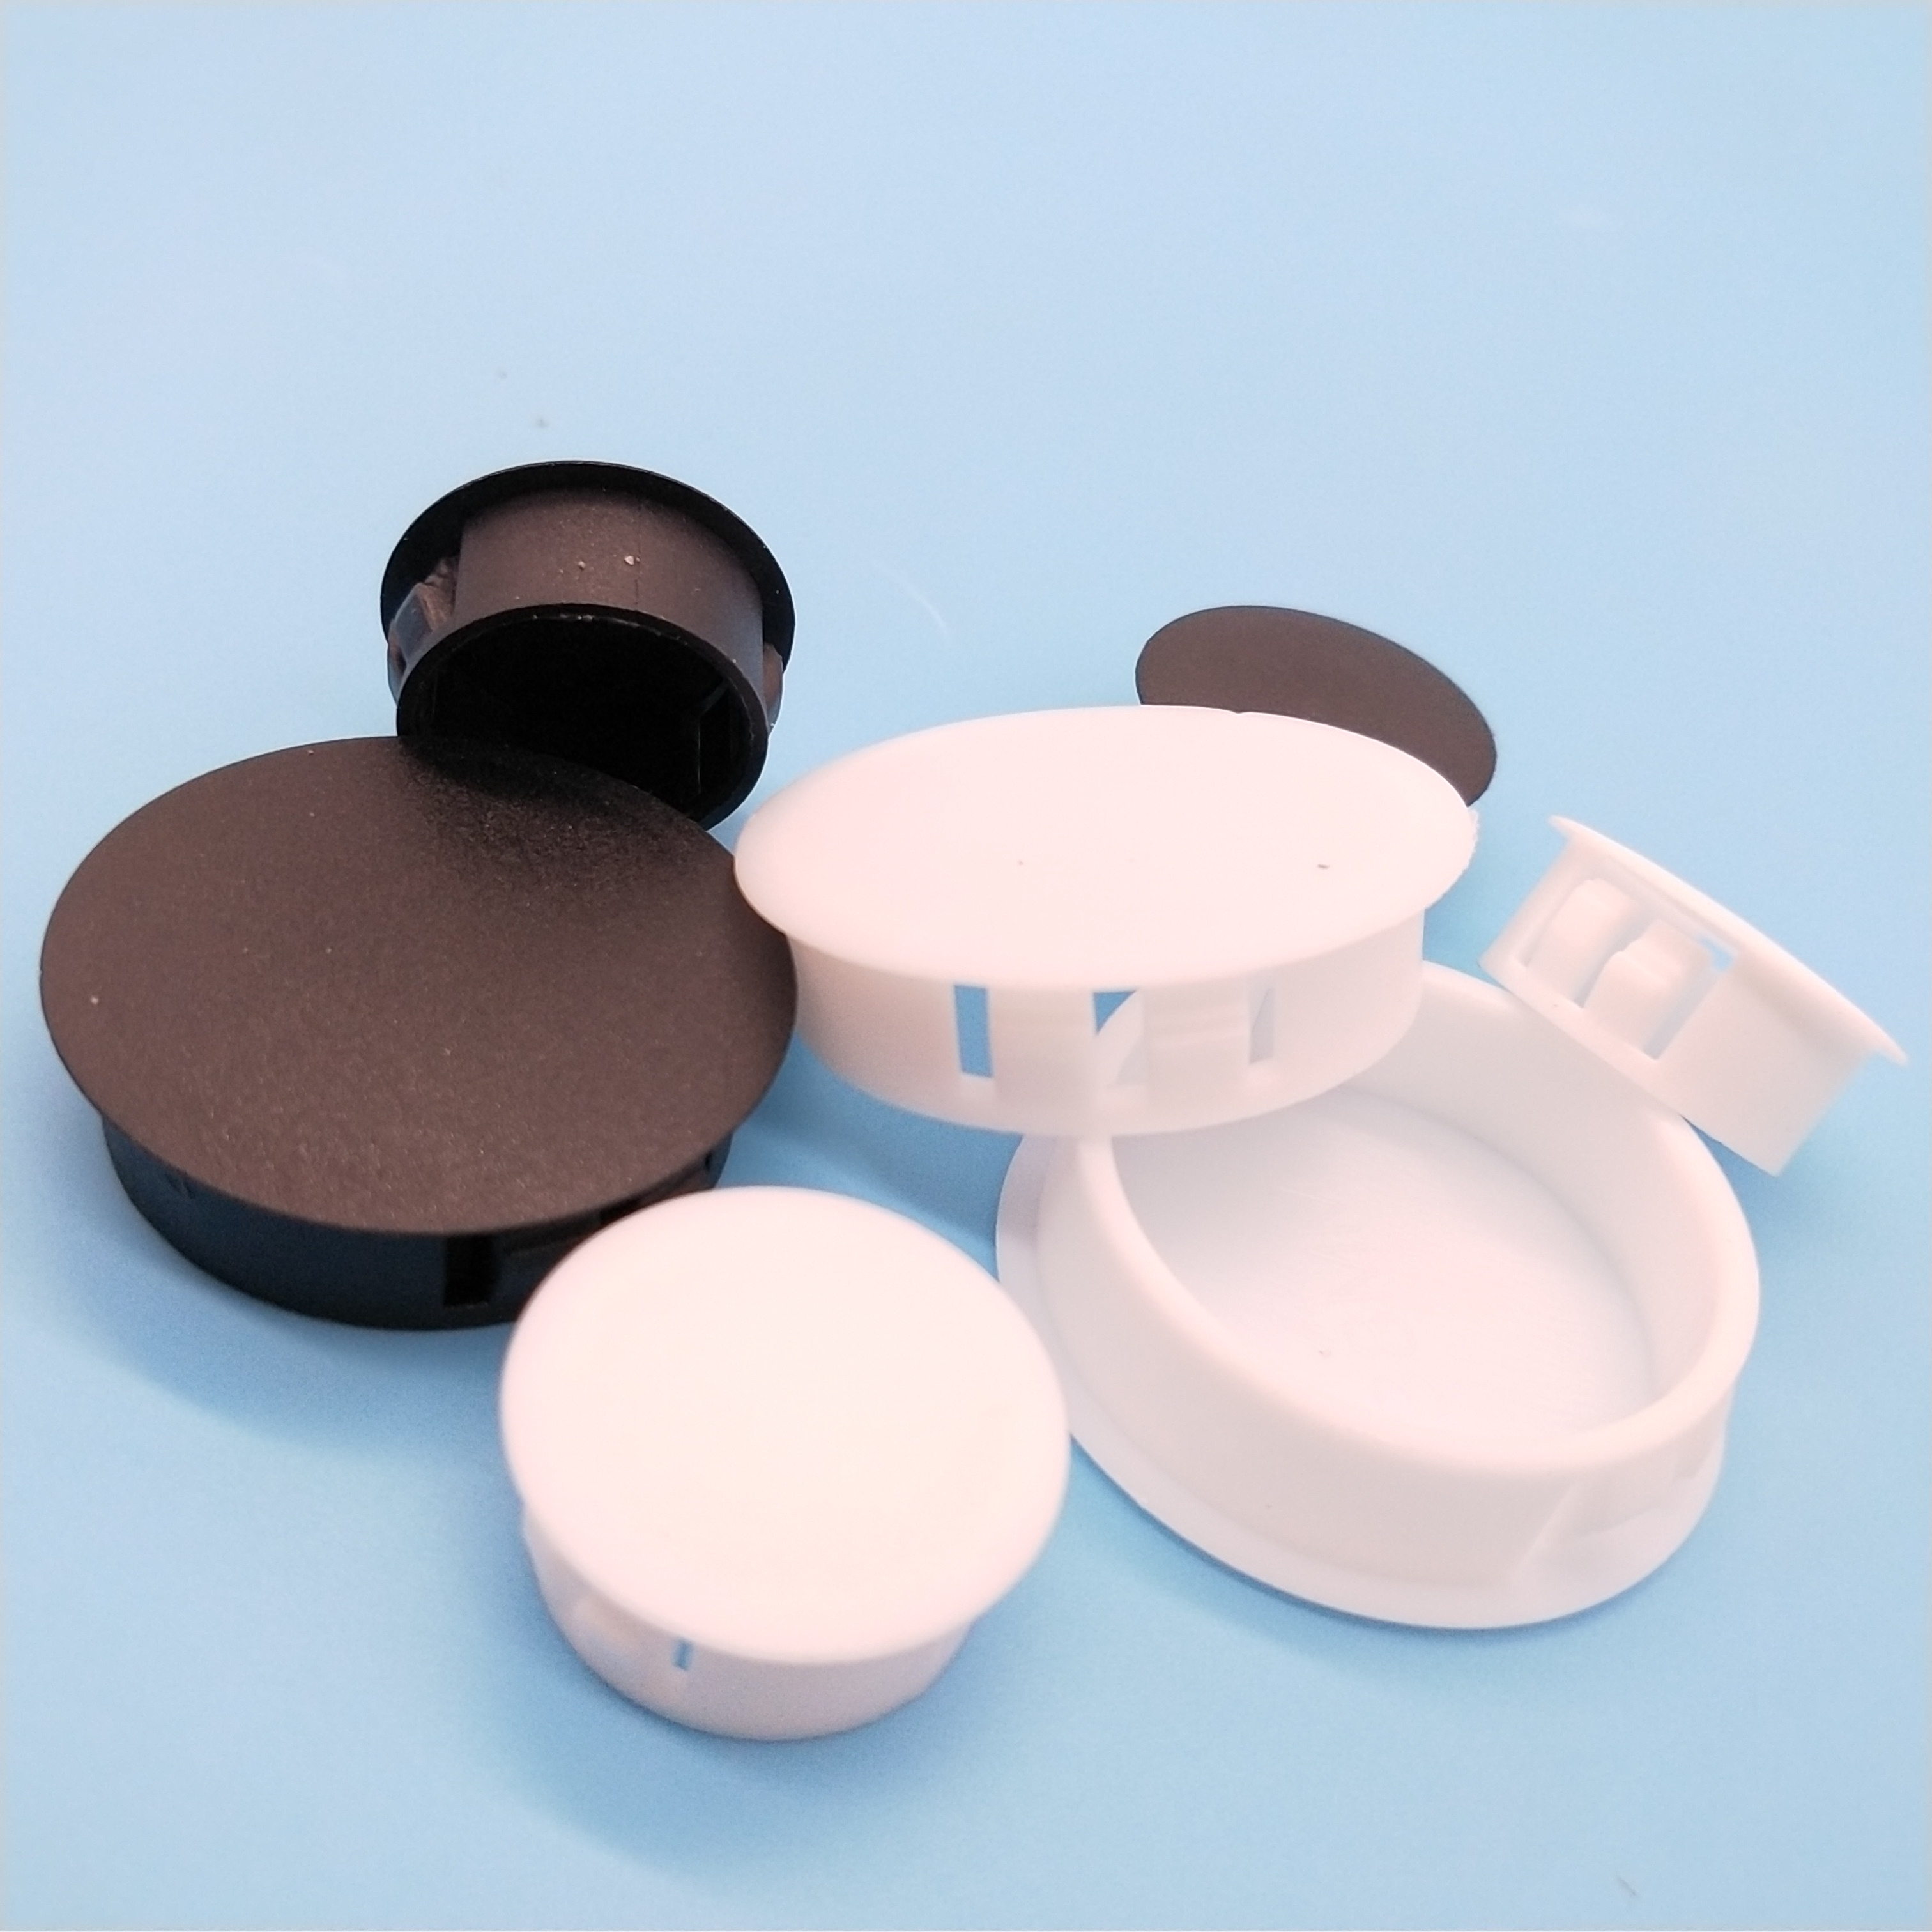 10 Hole Cover Plugs 6mm IROX Black Plastic Hole Depth 10mm Head 9mm Cap Cover Hole for Furniture 6mm